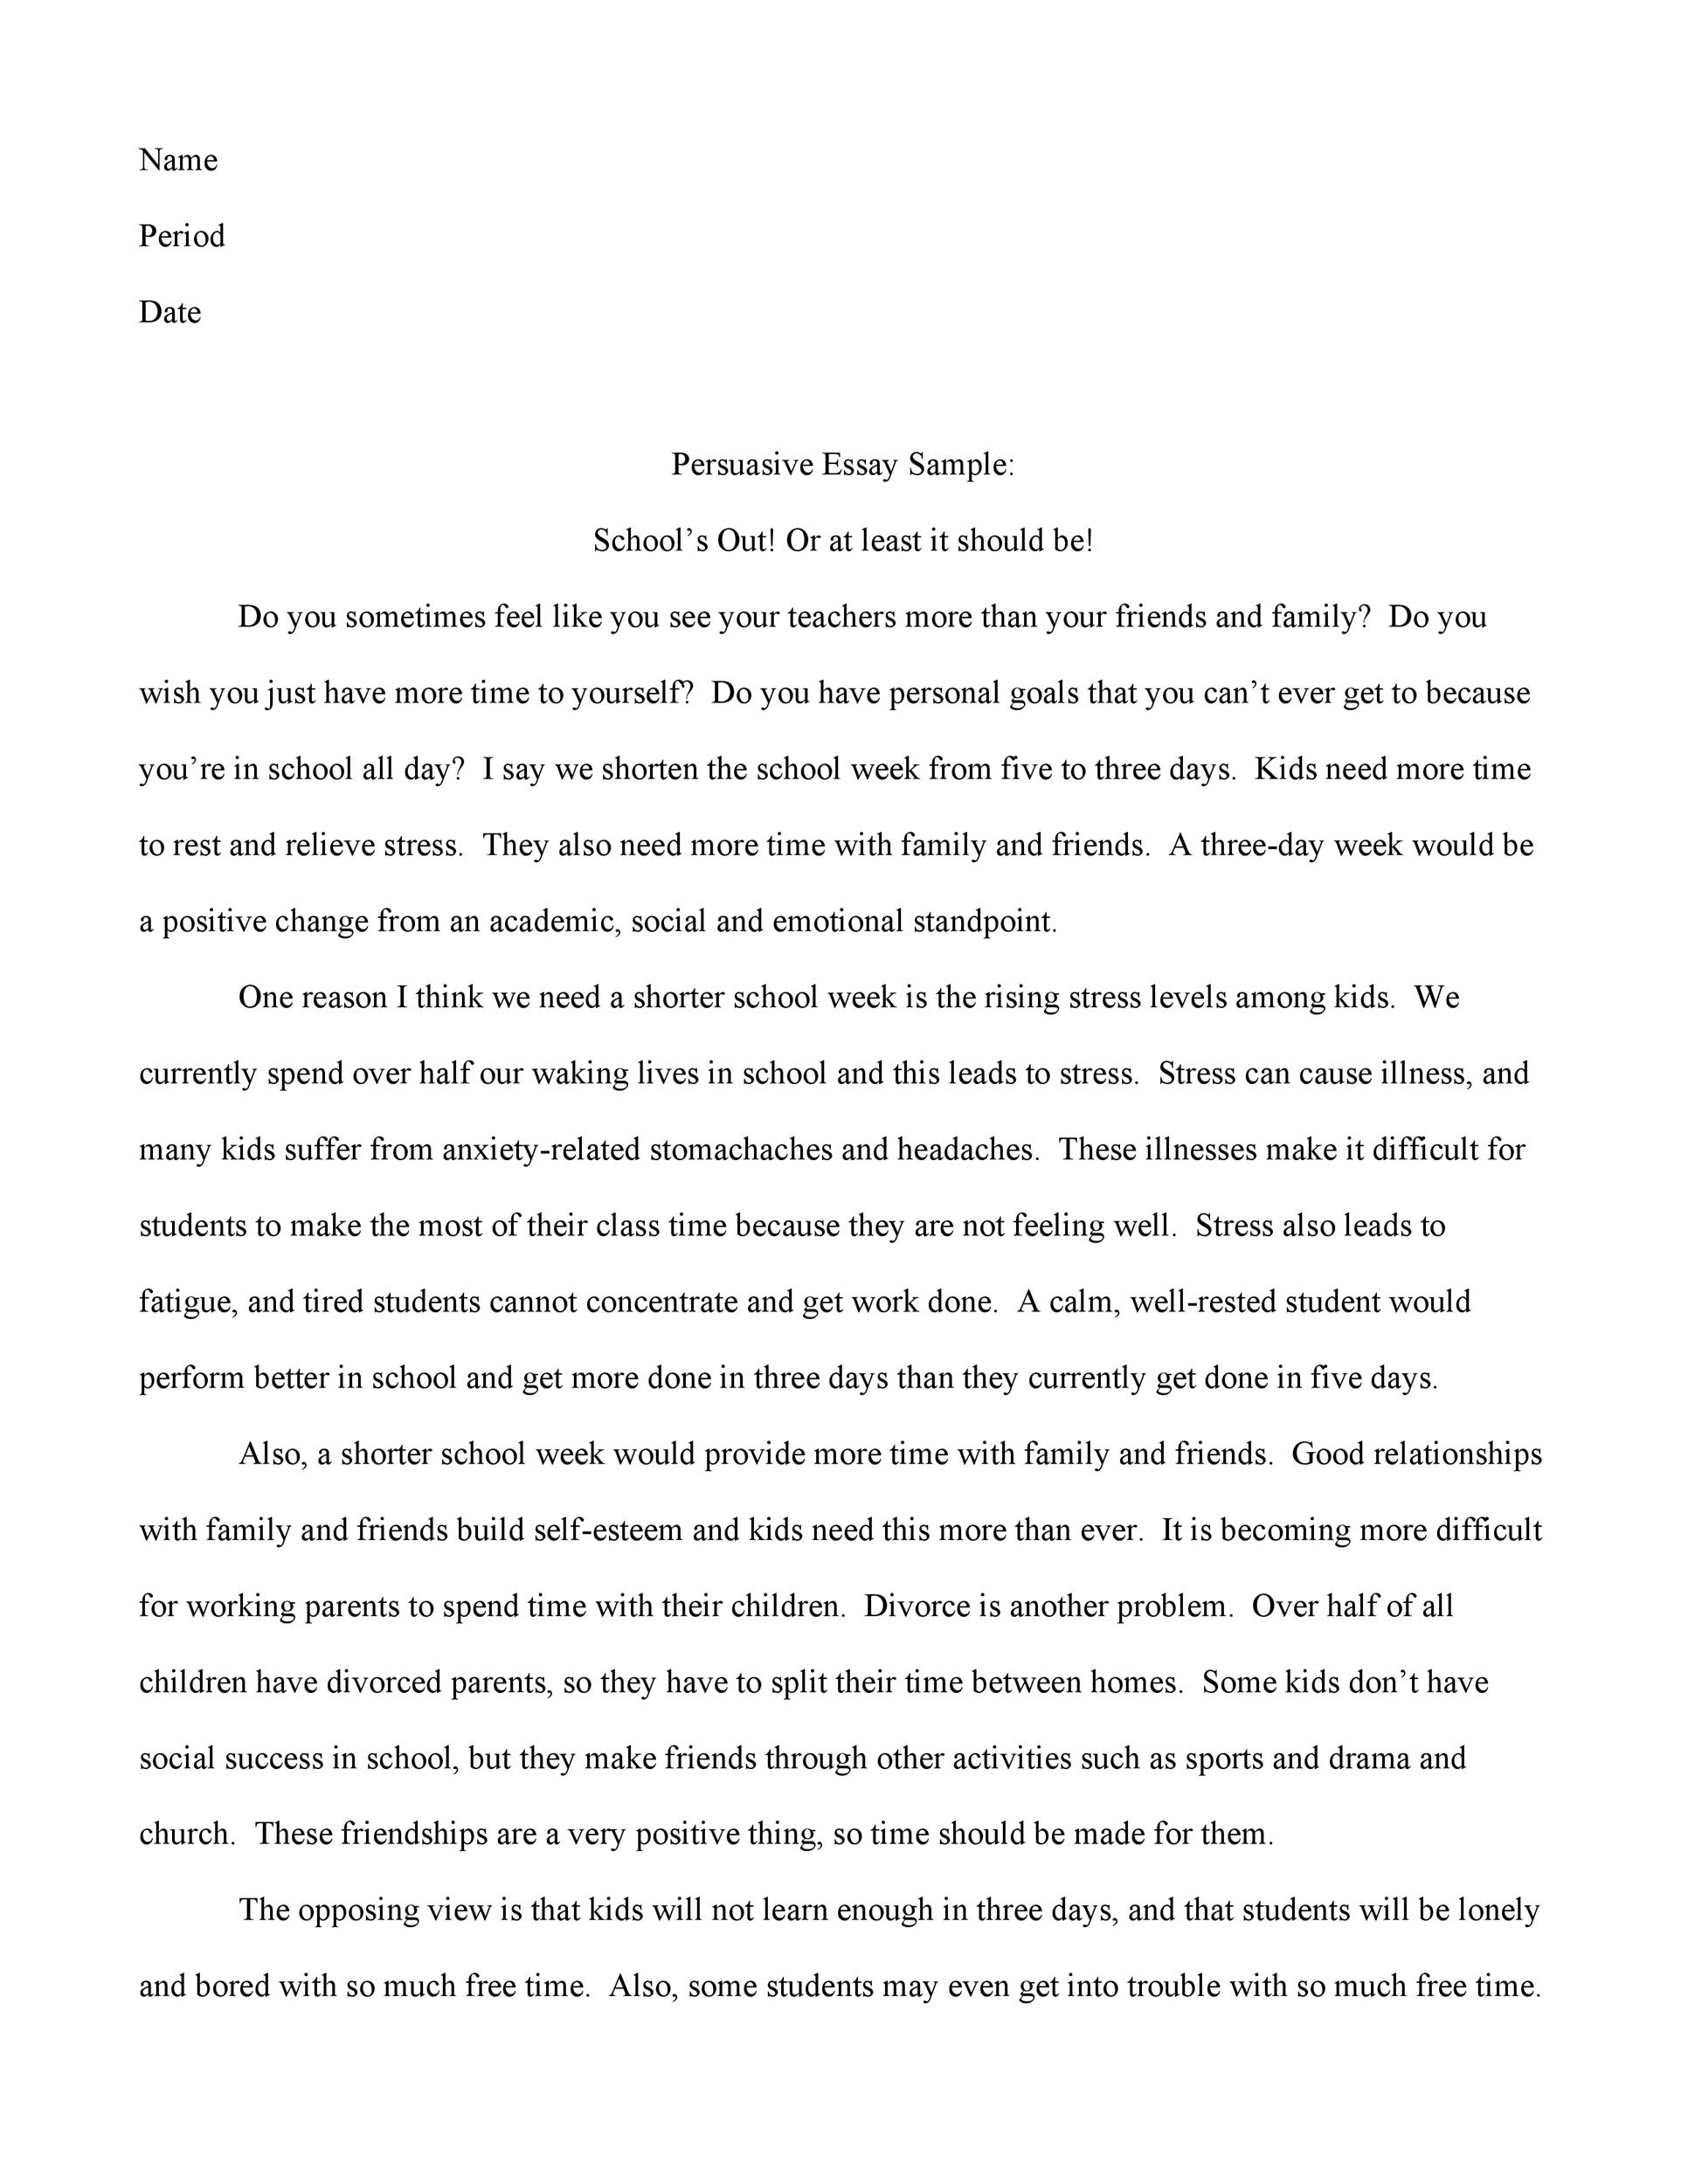 Aggressive Music Definition Essay